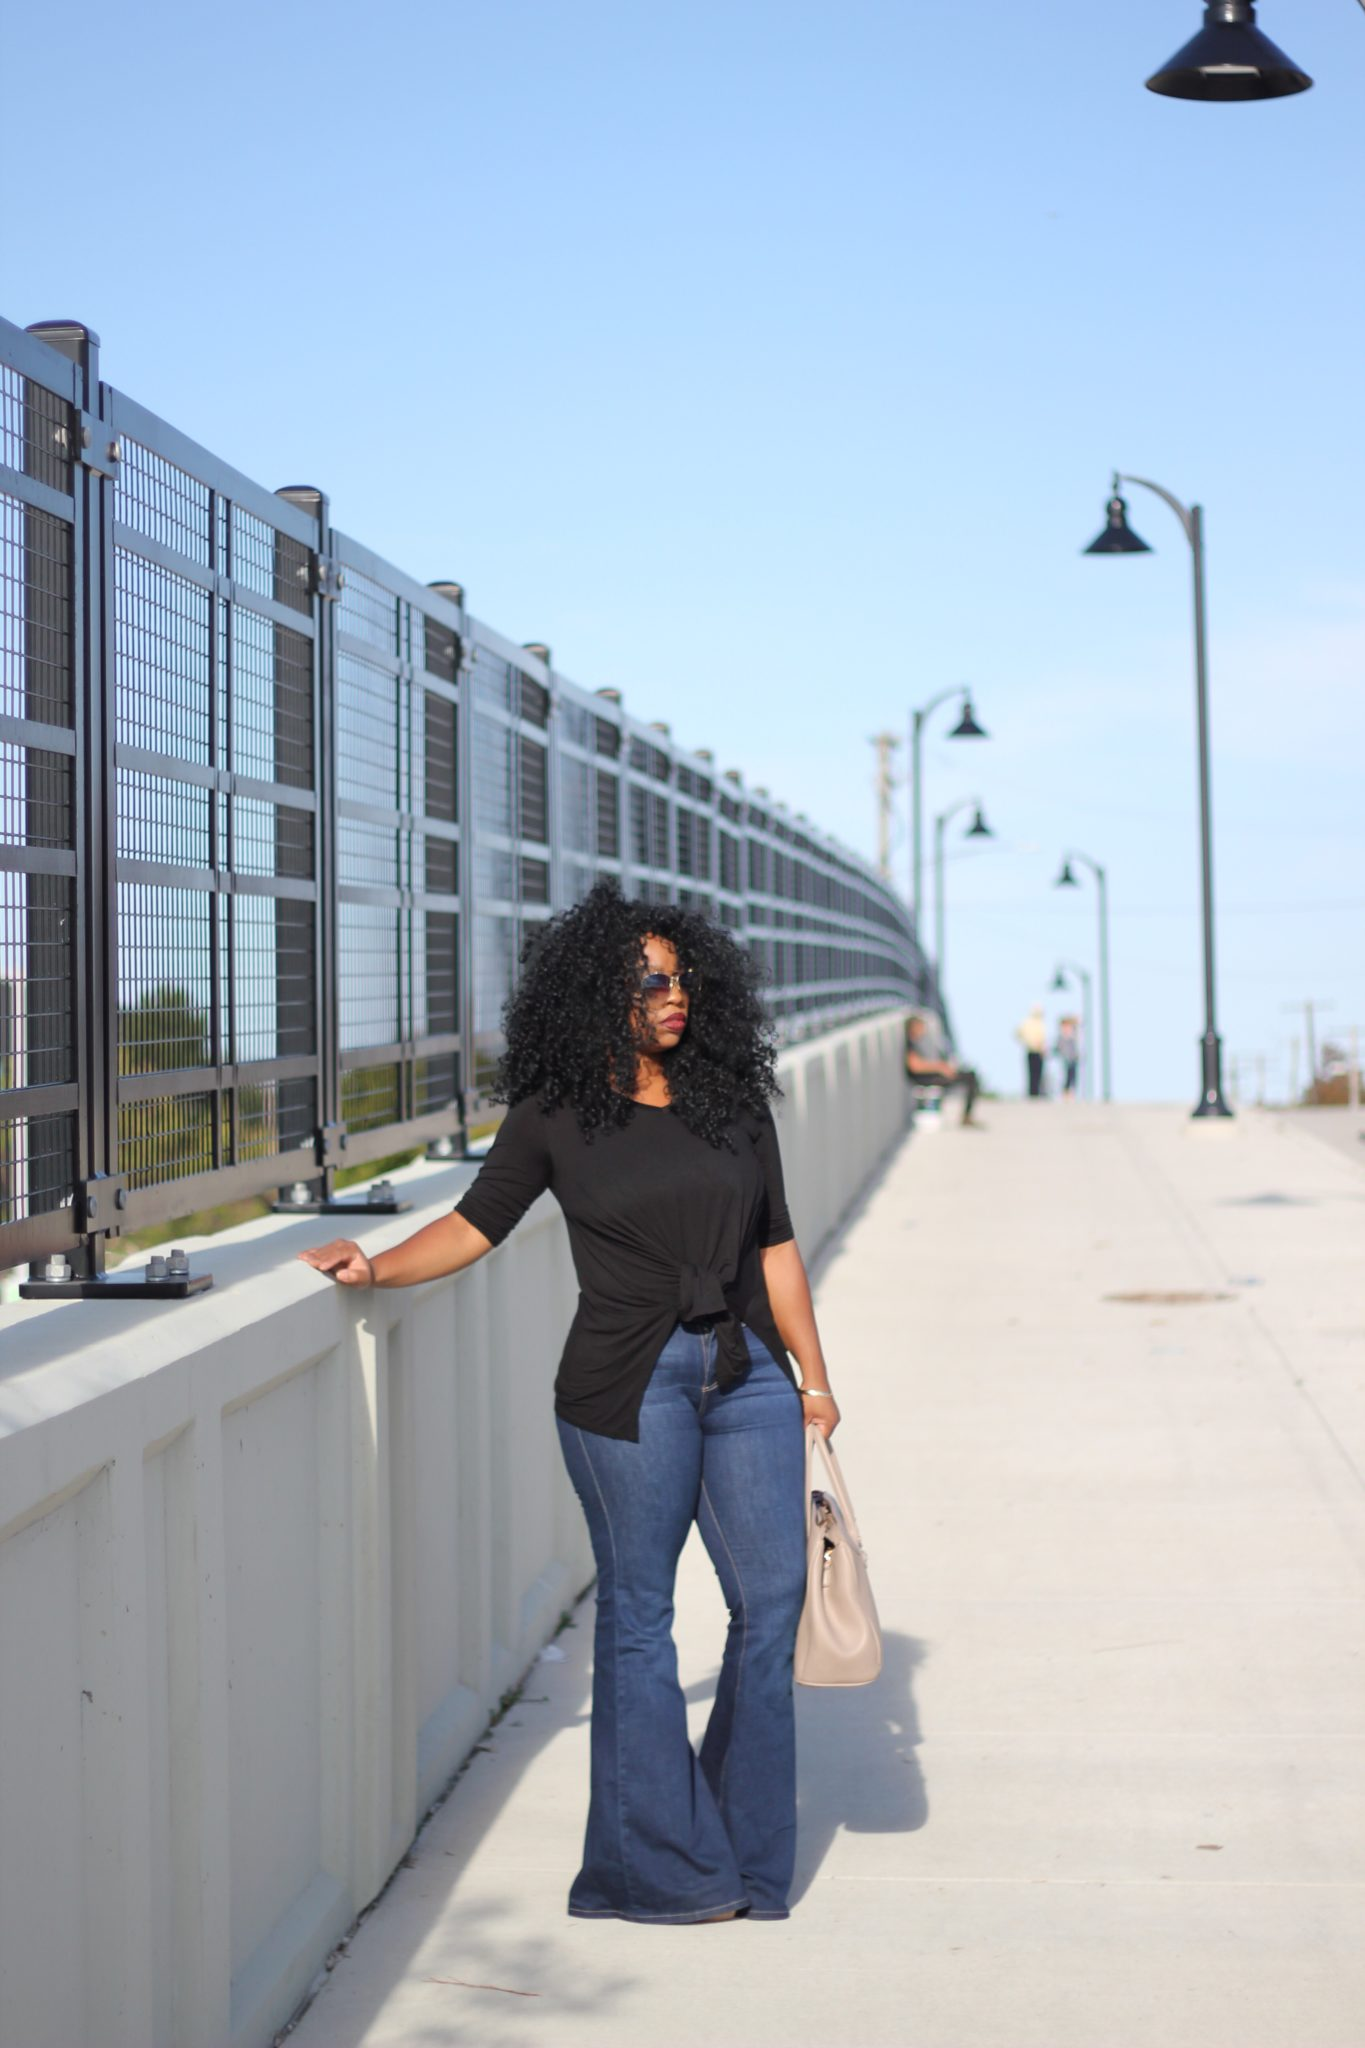 img_7424 Bootlegged...eBay Fall 2016 Justfab Meijer Style OOTD Uncategorized